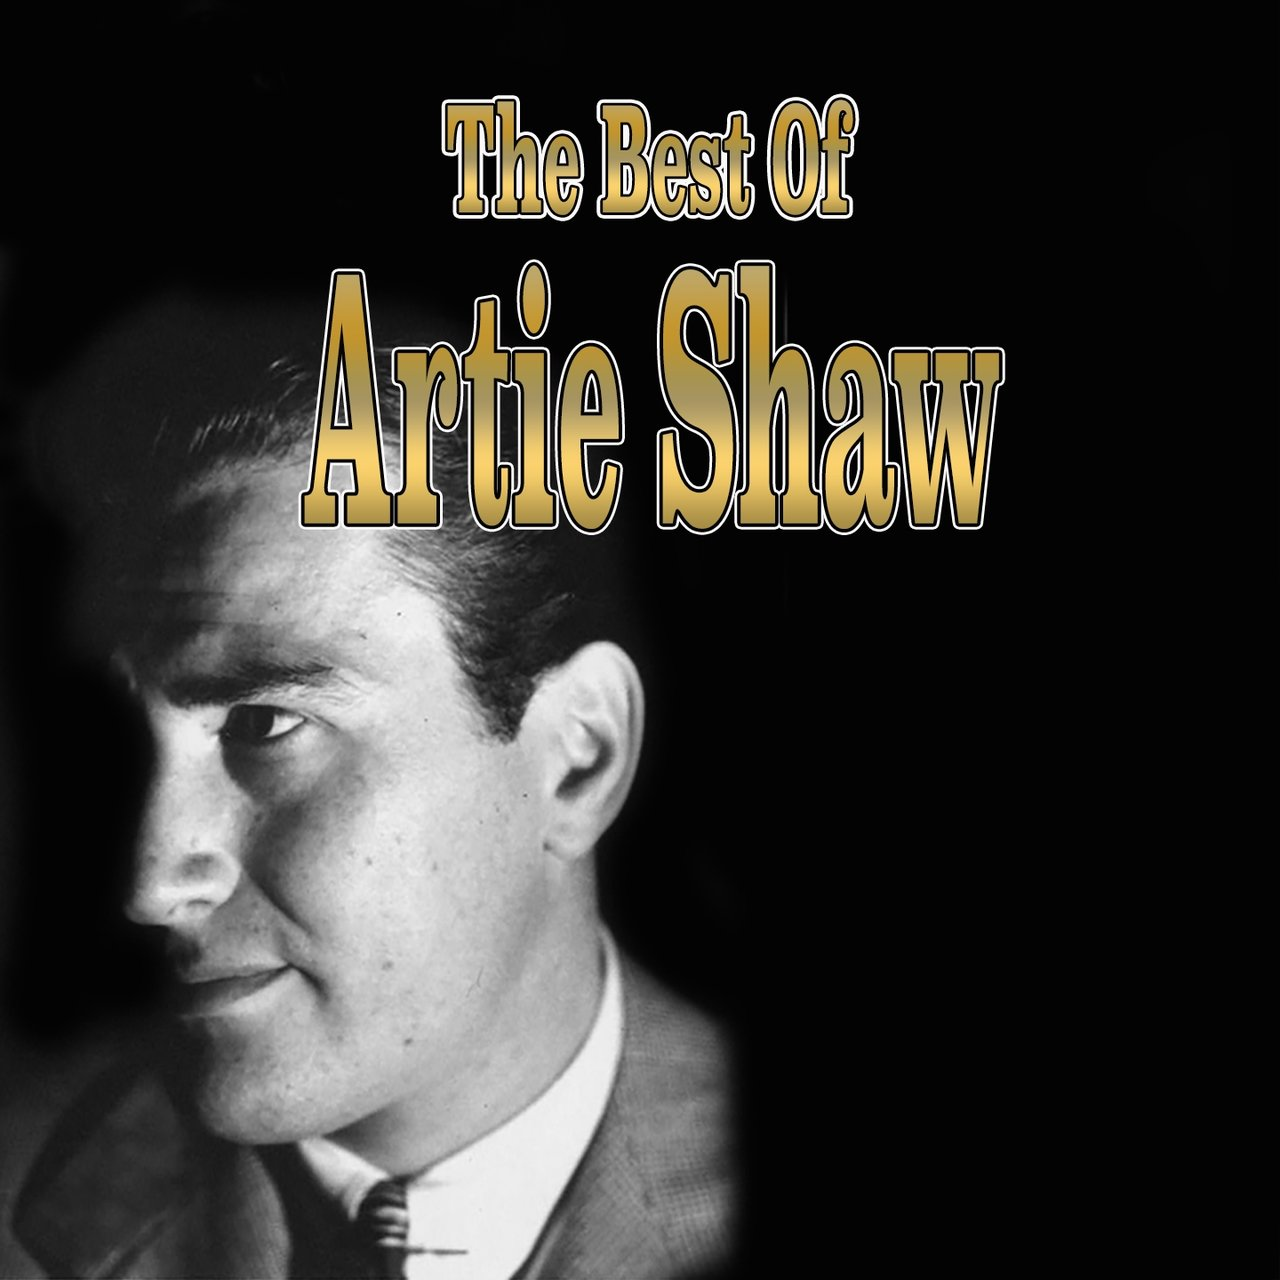 Artie Shaw Theme Song Listen To The Best Of Artie Shaw By Artie Shaw And His Orchestra